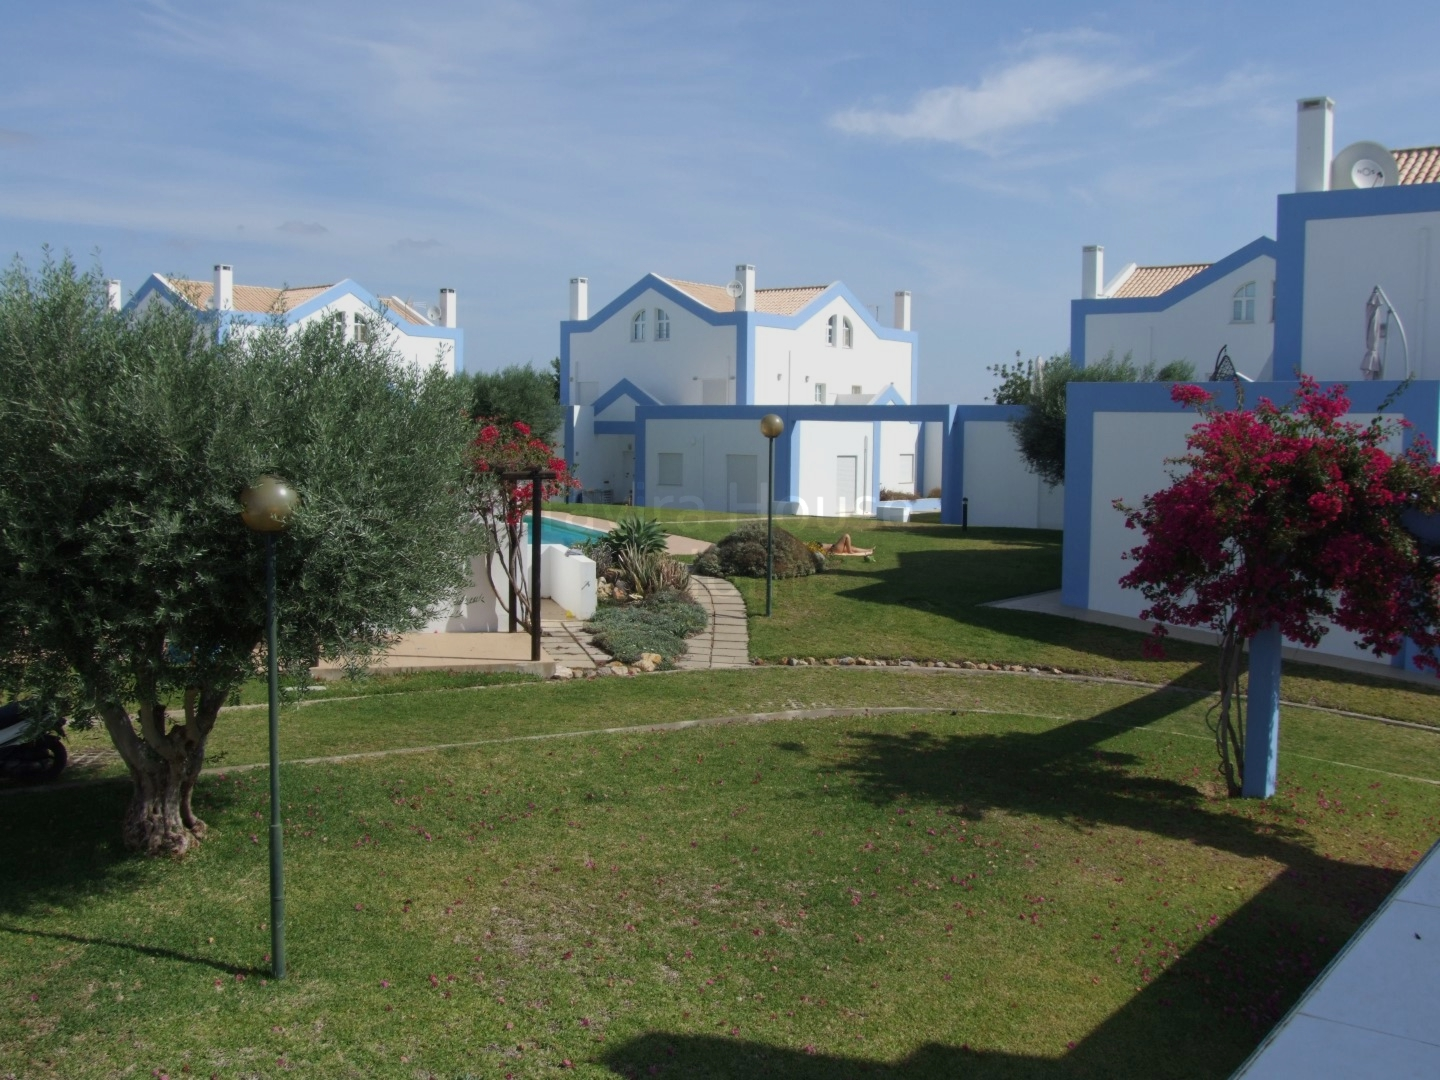 V0576 - 3 Bedroom Townhouse with Pool  Tavira  Portugal